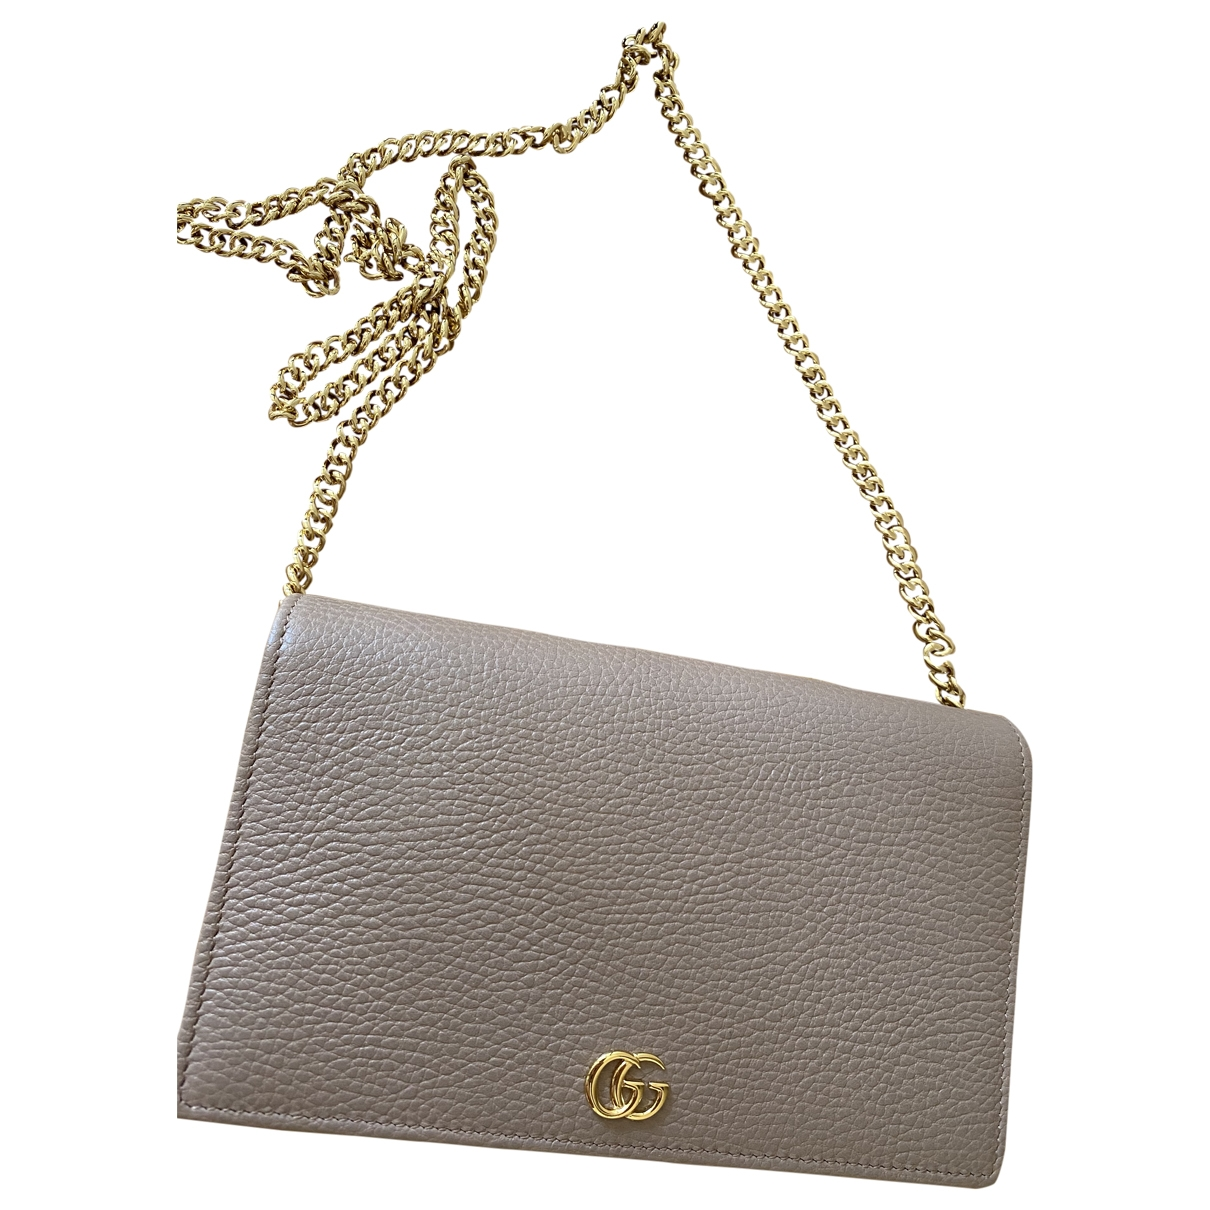 Gucci Marmont Beige Leather Clutch bag for Women \N